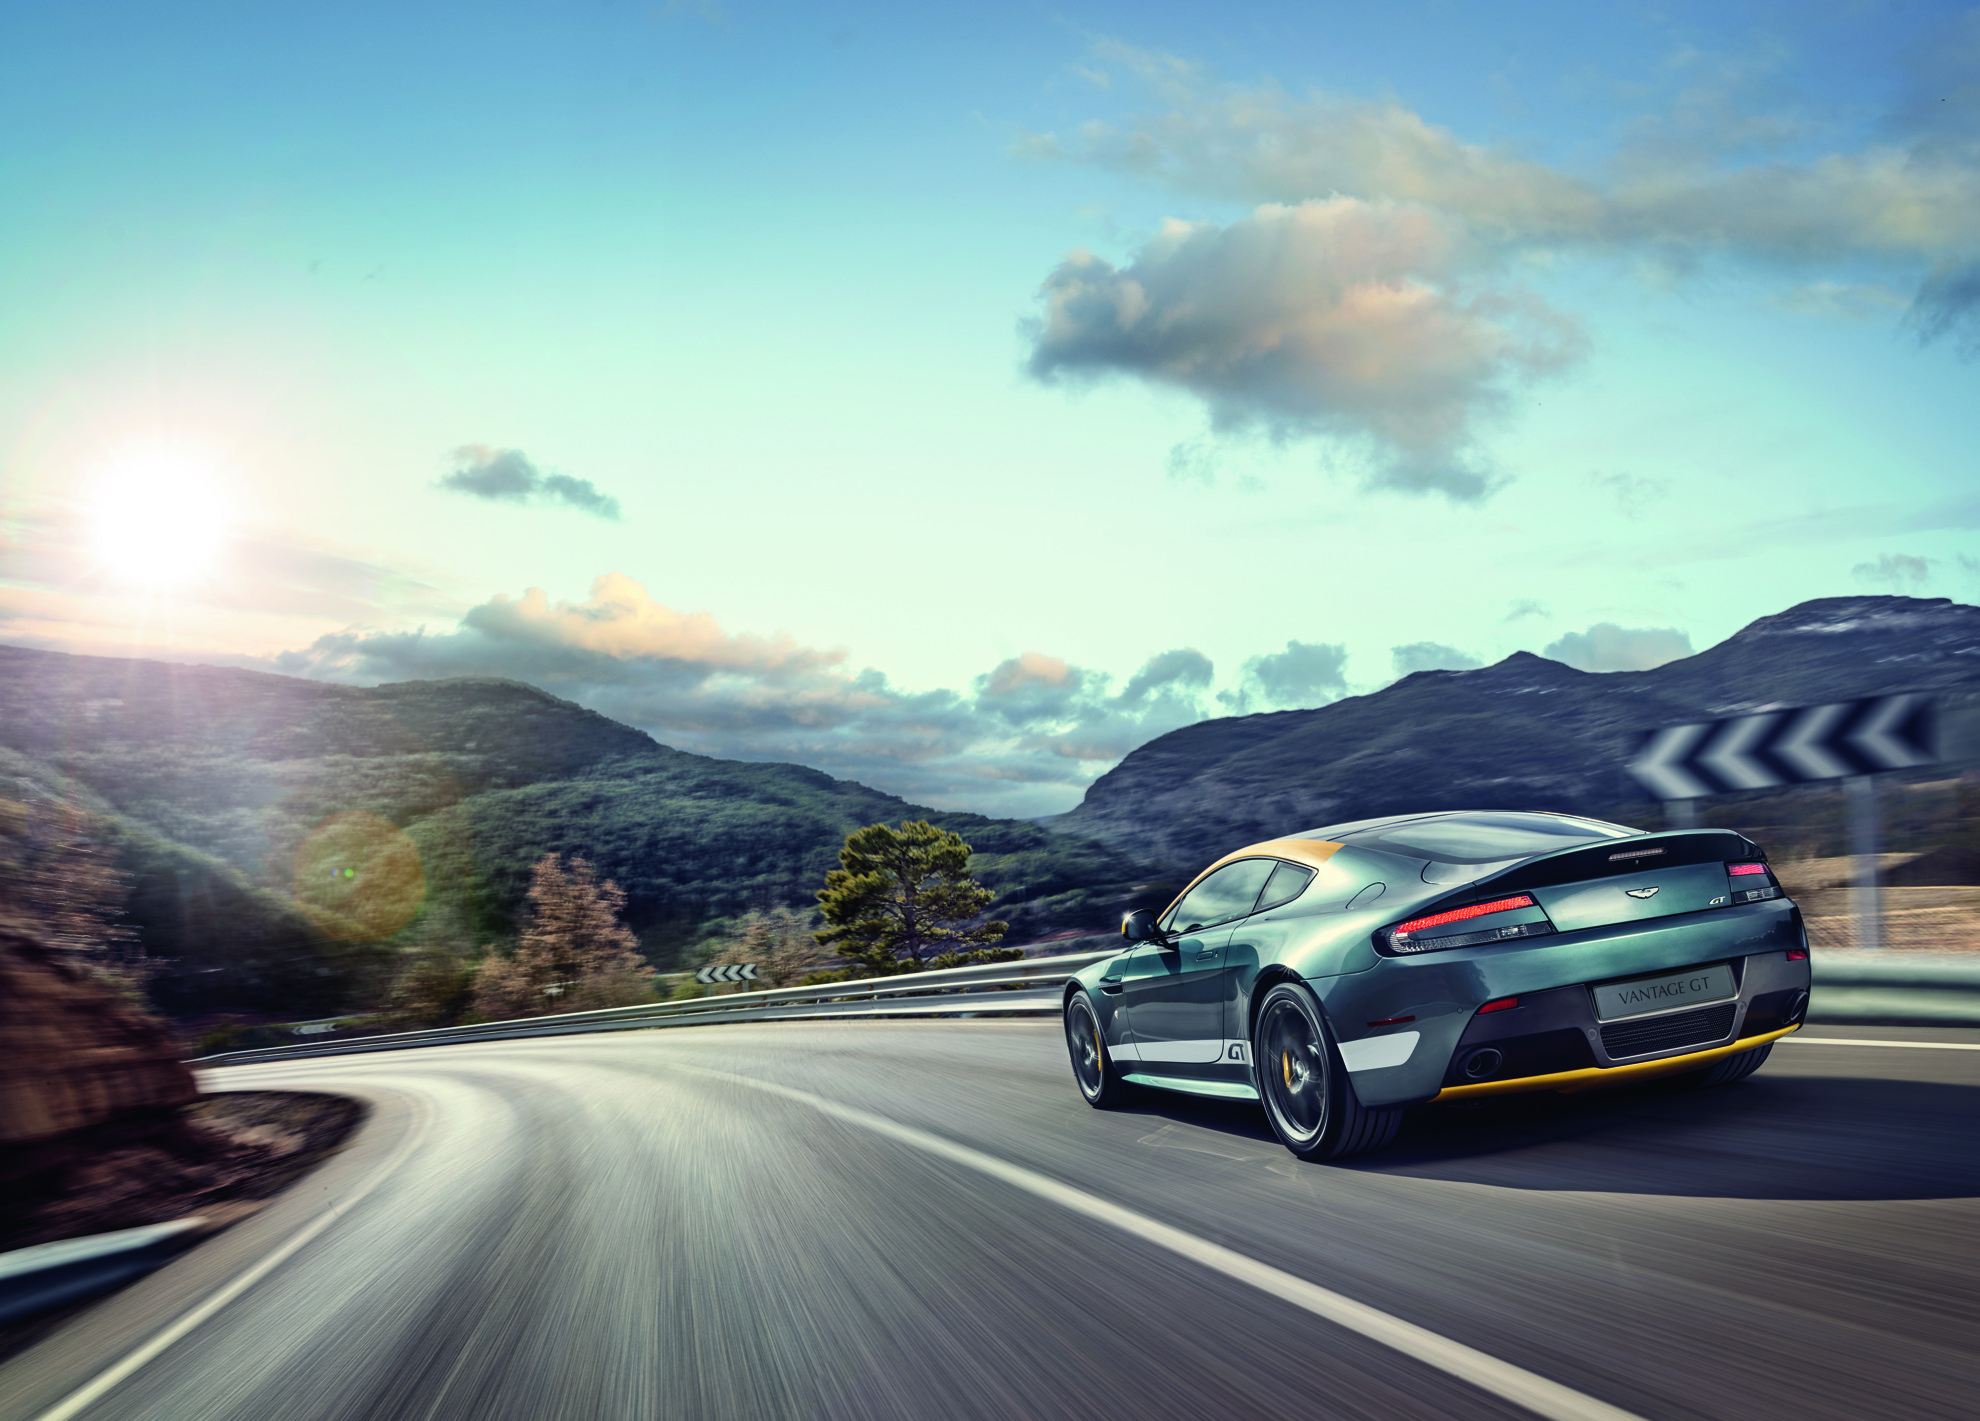 Aston Martin New Jersey Dealership - Aston martin dealerships